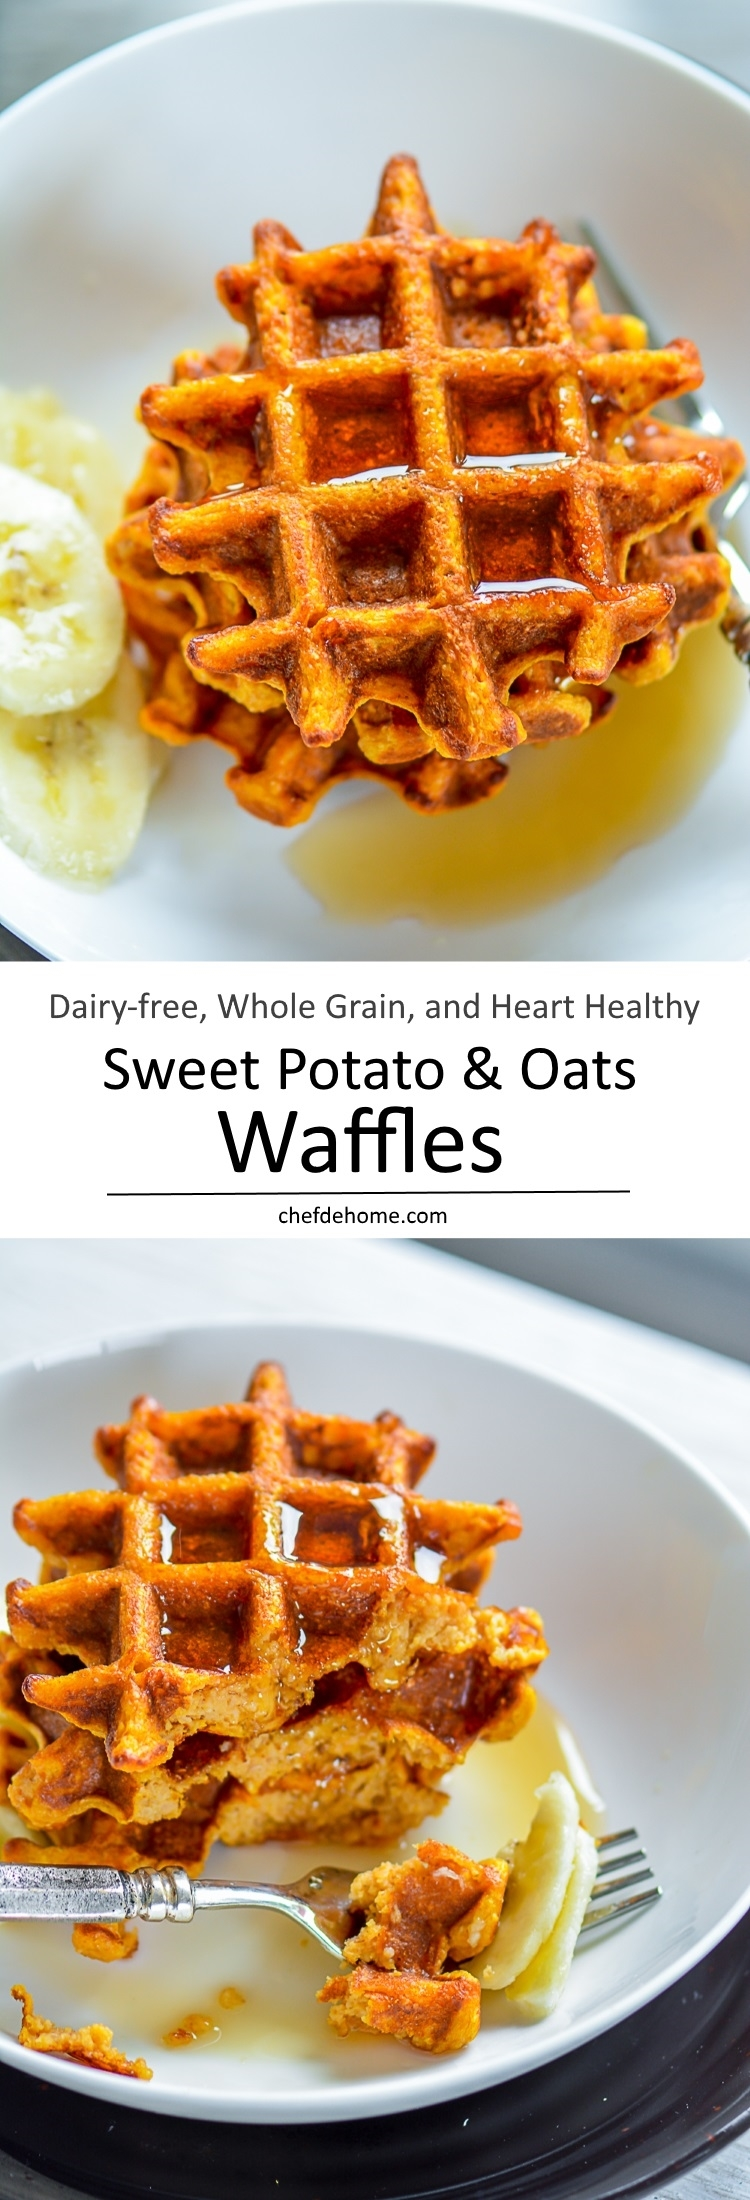 Enjoy a healthy breakfast with Family with waffles made with Whole Grain Oats and sweet potatoes and can be vegan | chefdehome.com